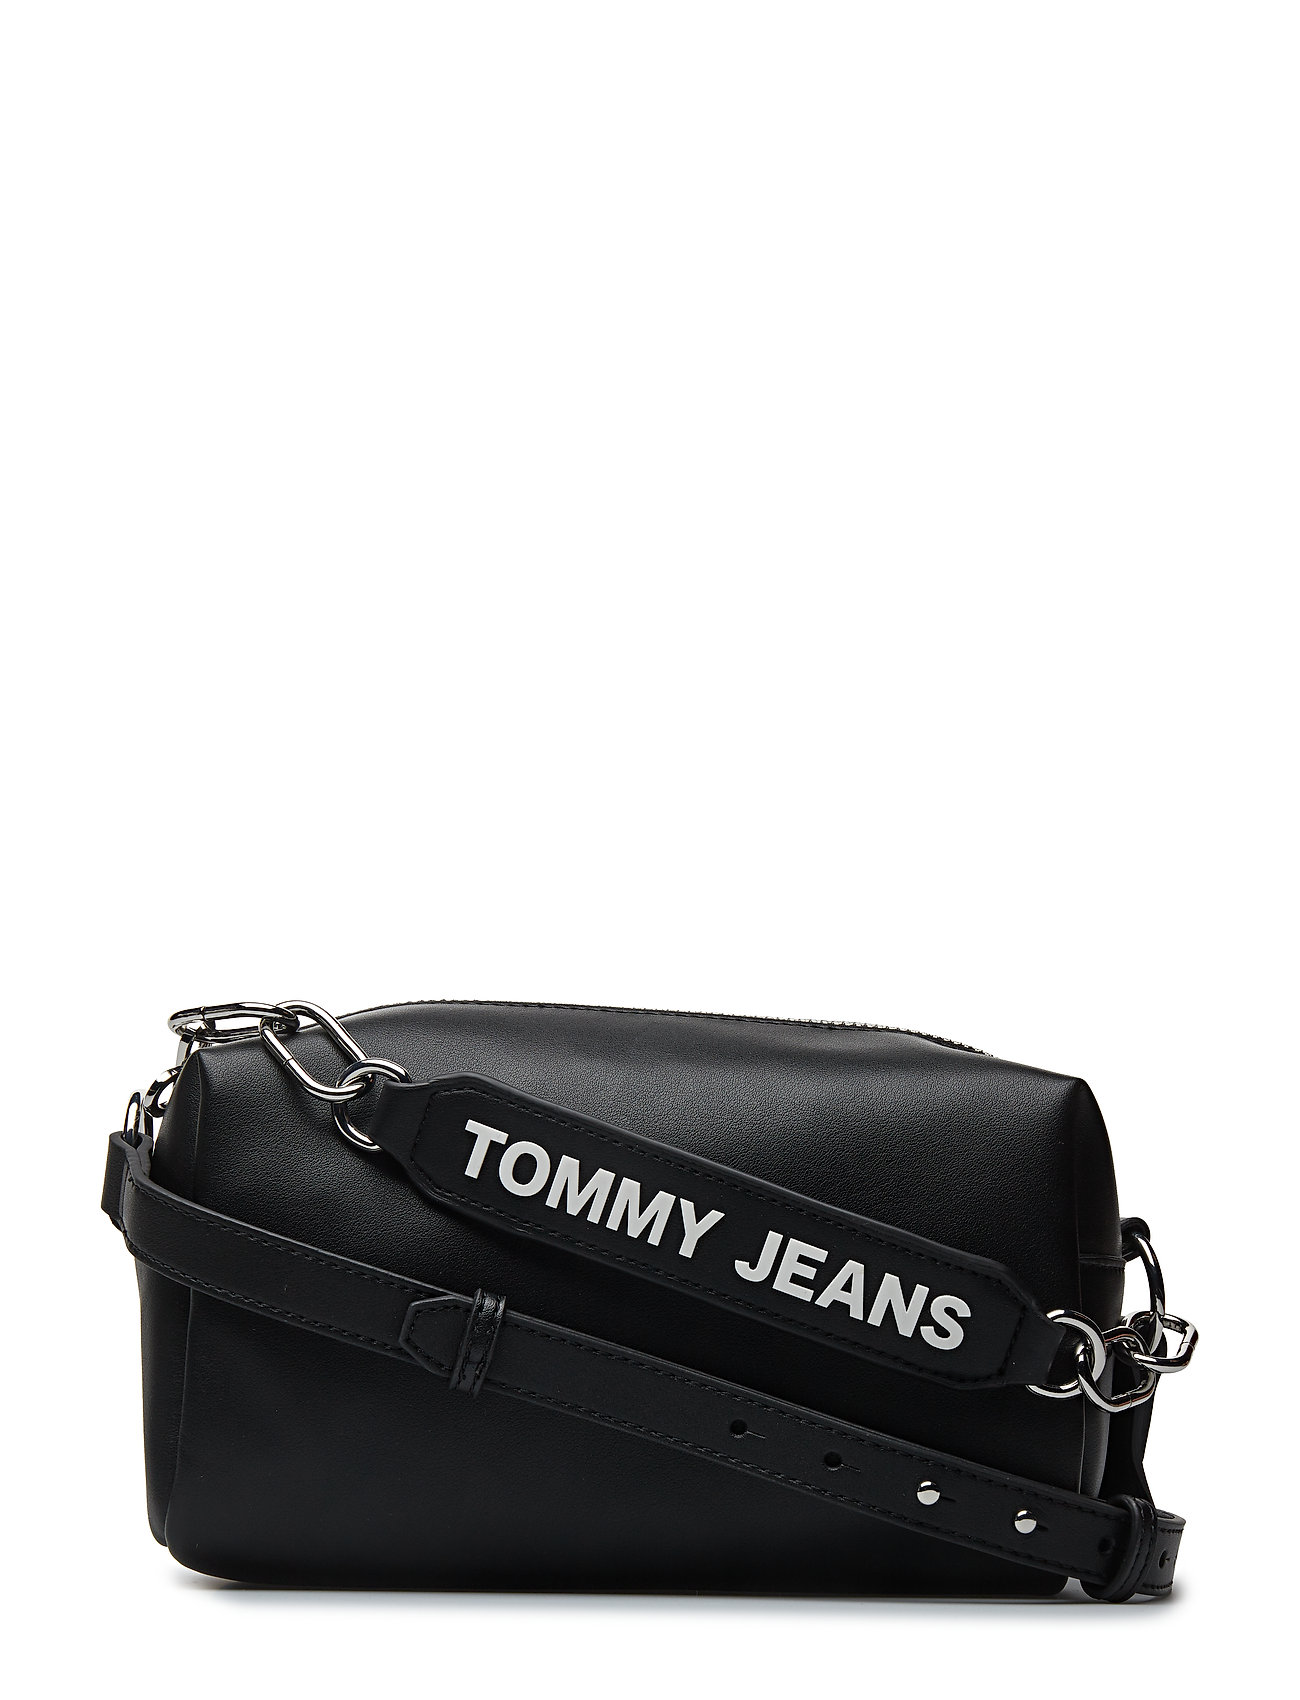 TOMMY HILFIGER Tjw Femme Crossover Bags Small Shoulder Bags/crossbody Bags Schwarz TOMMY HILFIGER